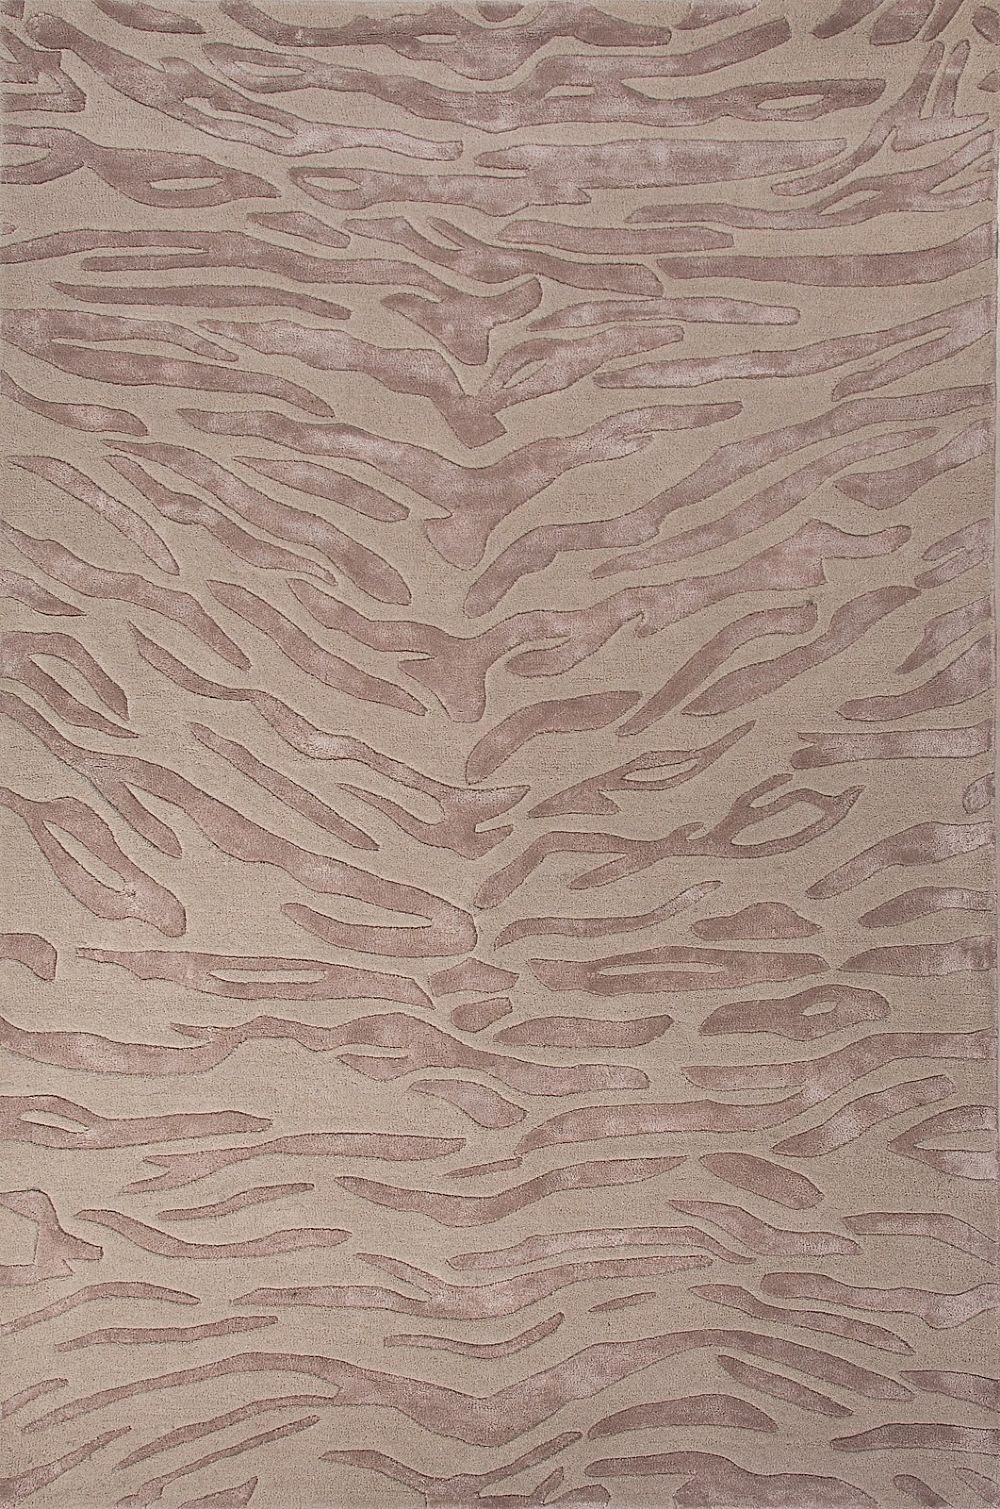 jaipur national geographic home  tufted contemporary area rug collection